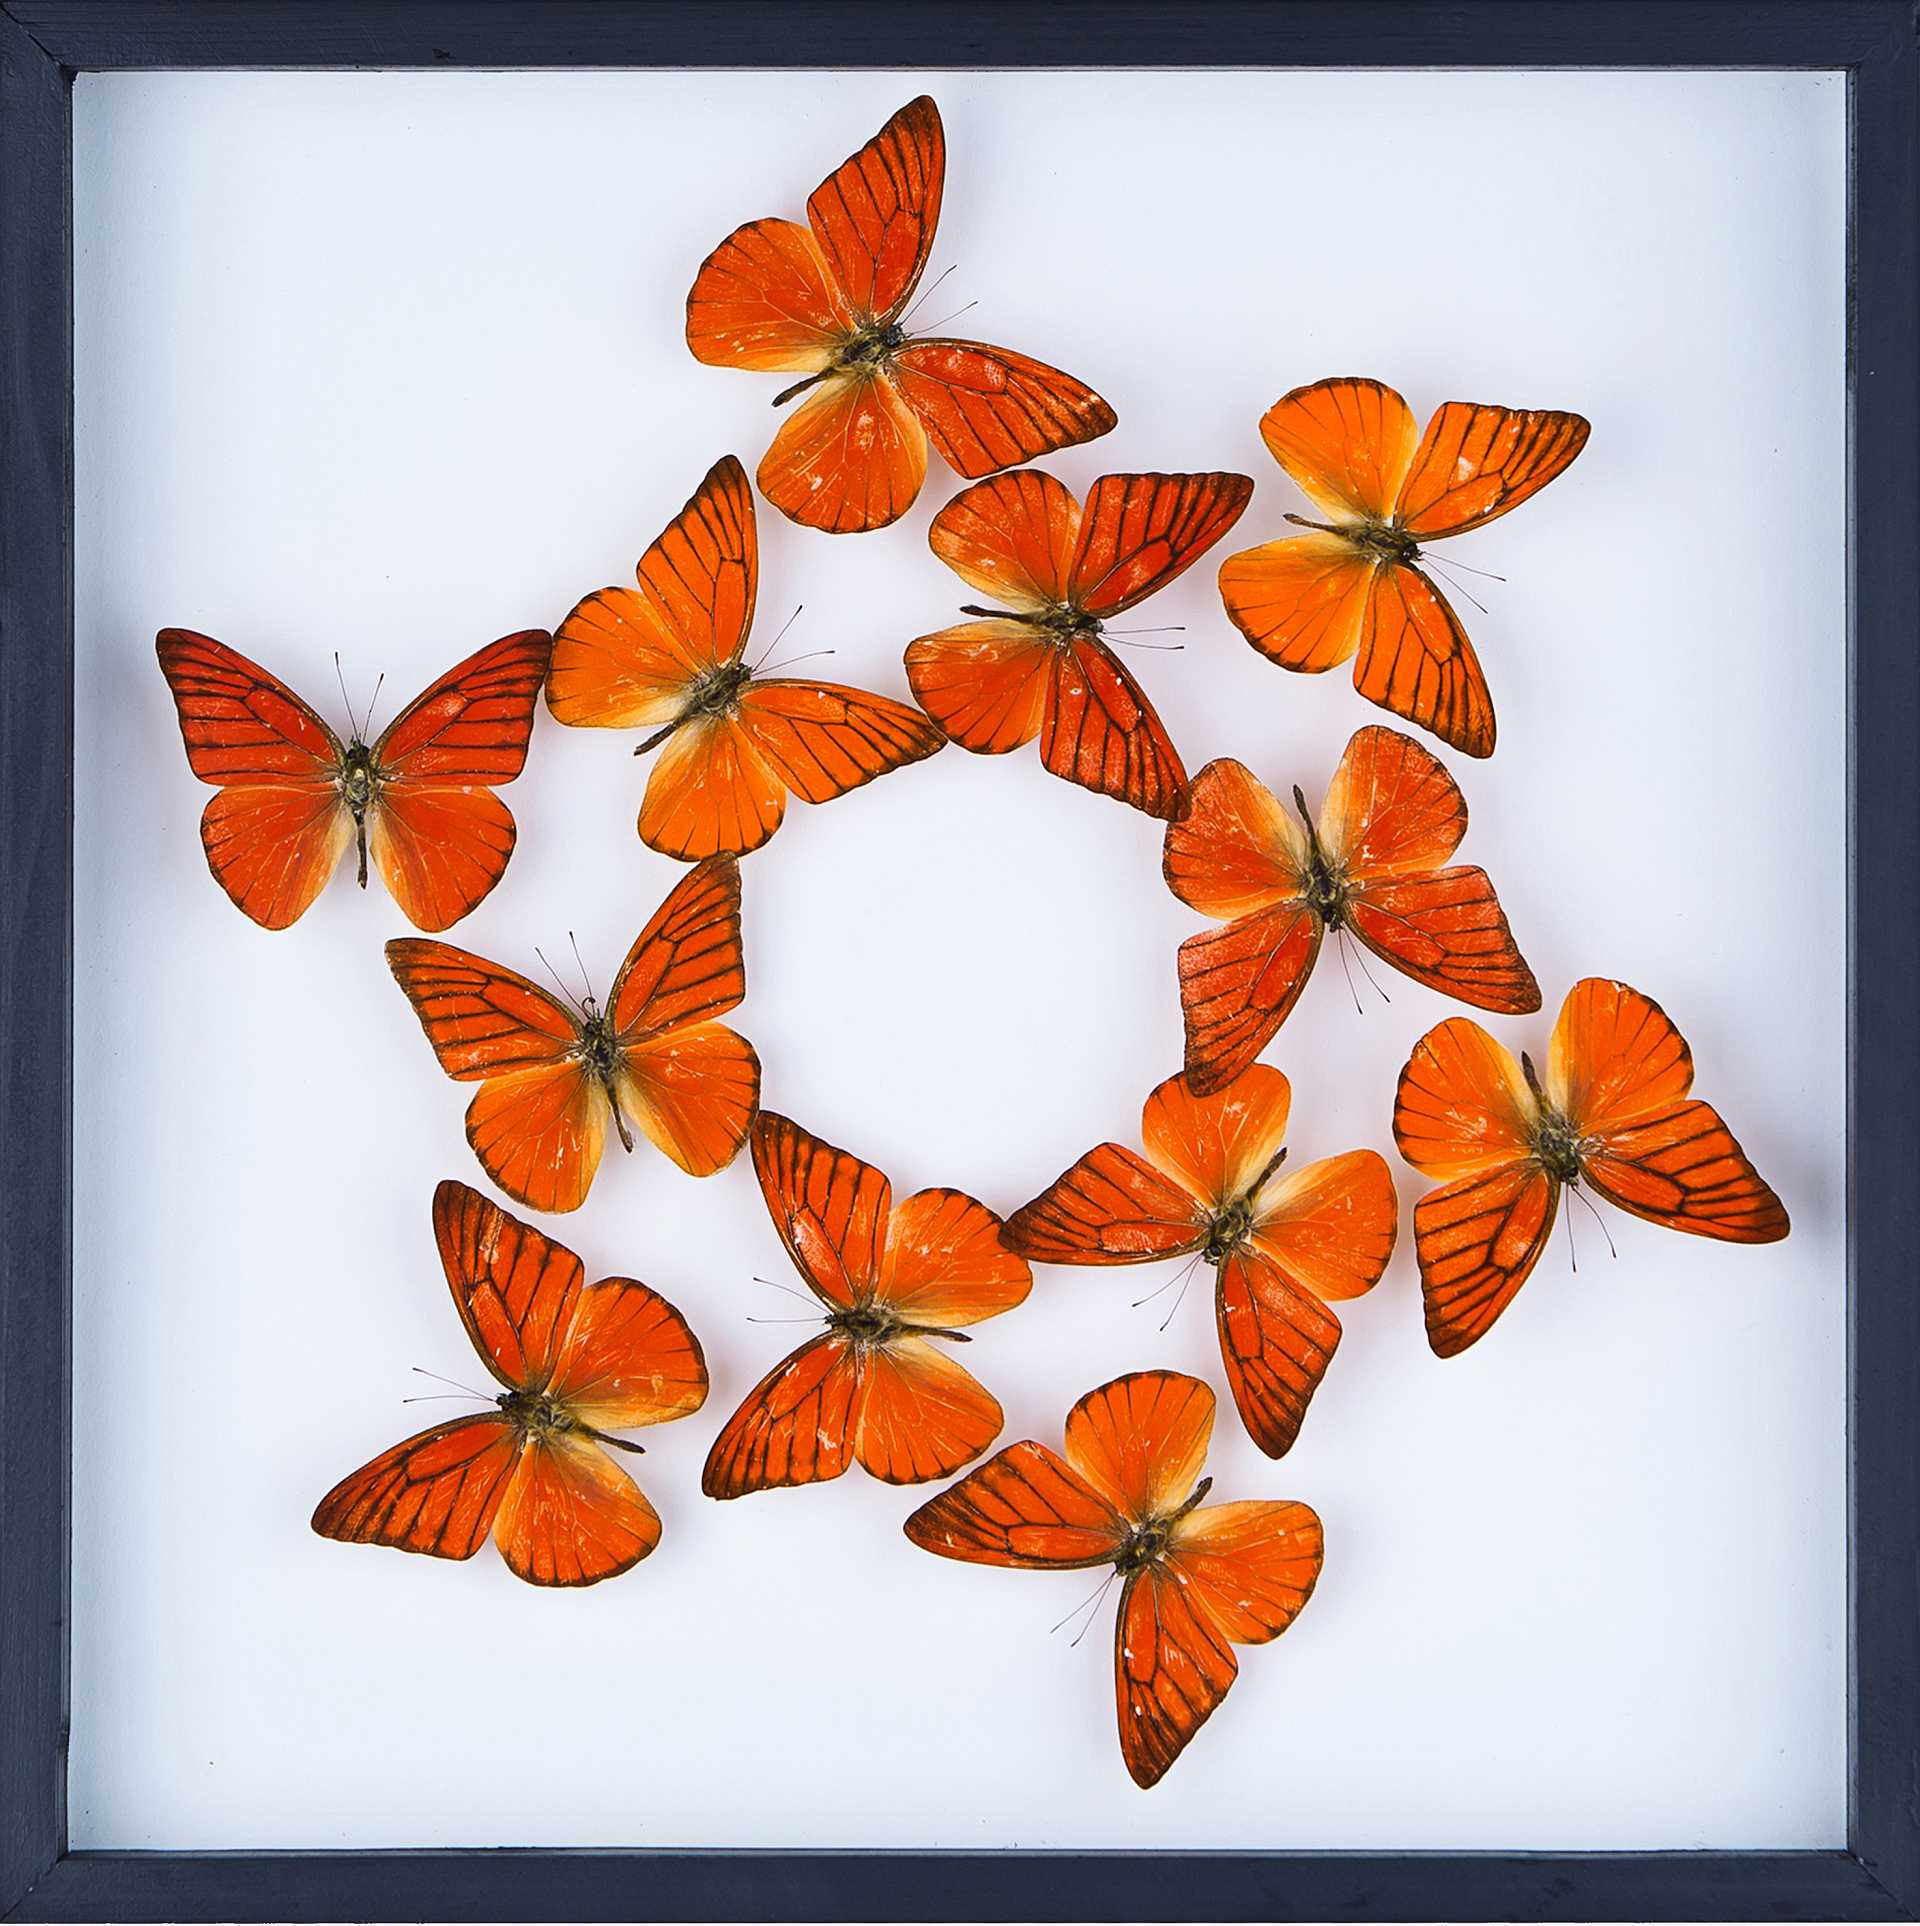 Exotic Gifts: Butterfly Taxidermy, Framed Insects ...